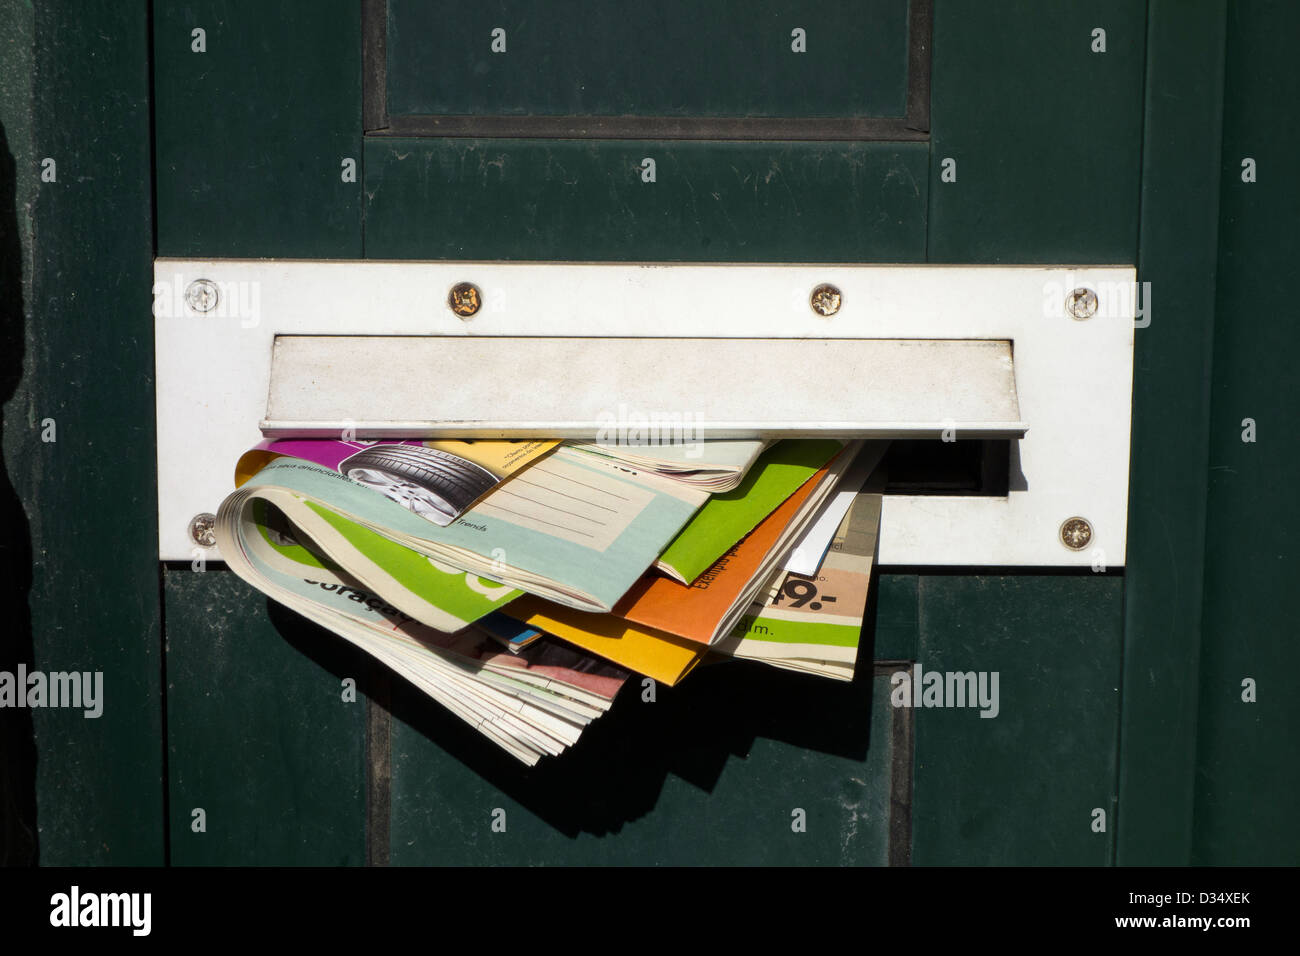 Mailbox filled with junk mail leaflets - Stock Image